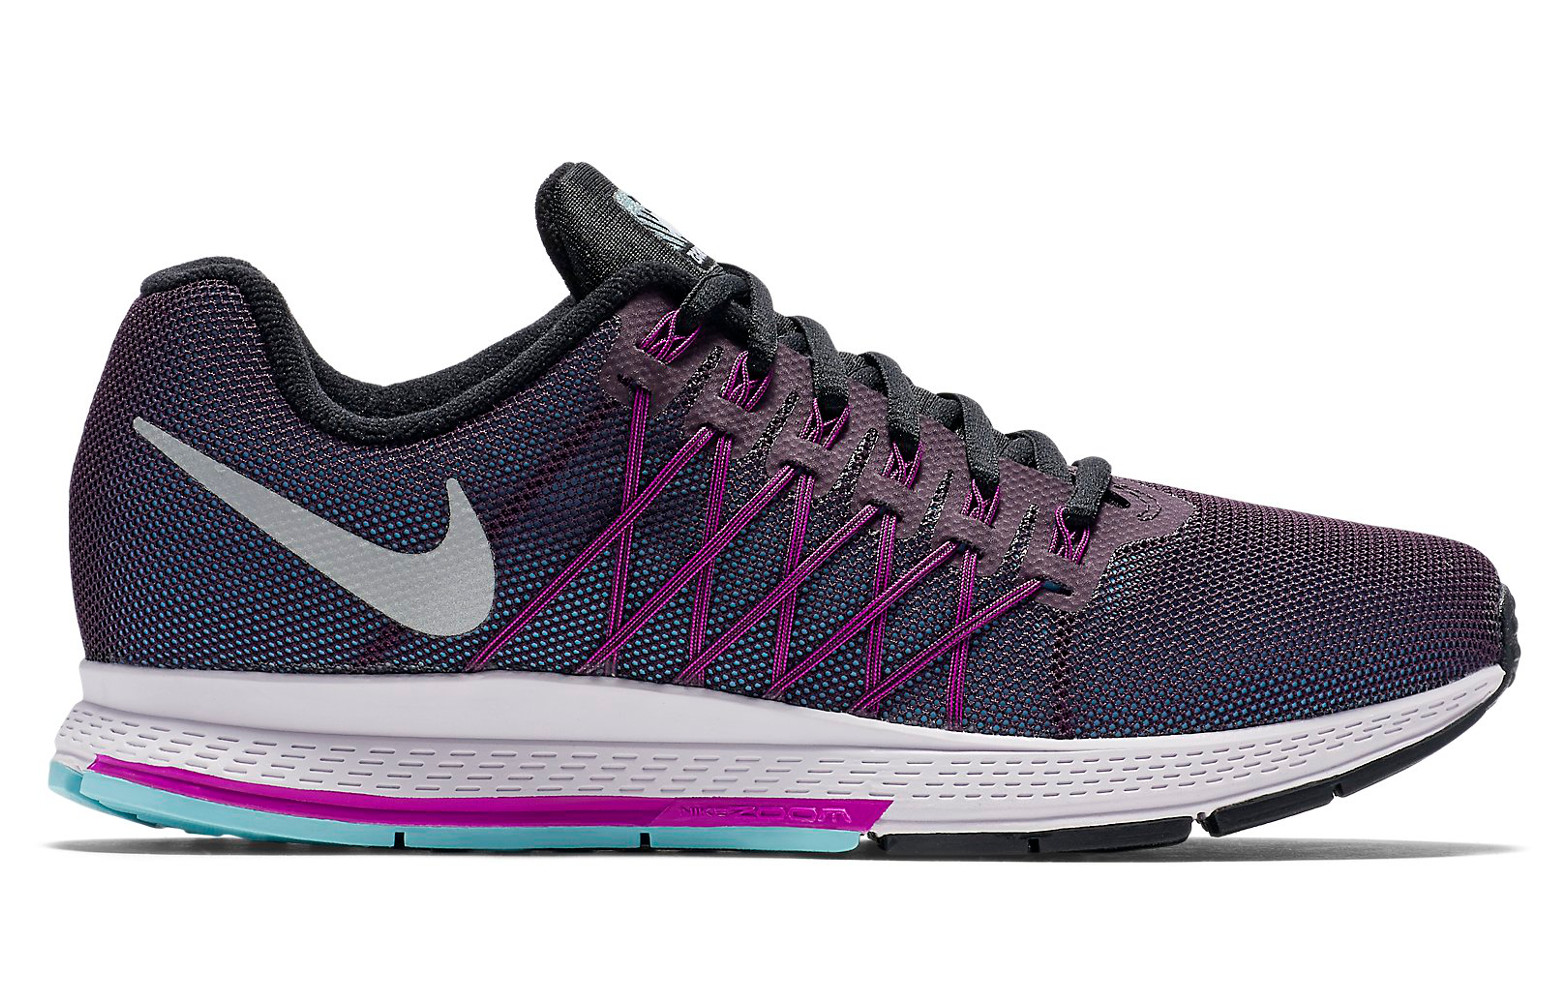 Nike Shoes Air Zoom Pegasus 32 Flash Purple Women